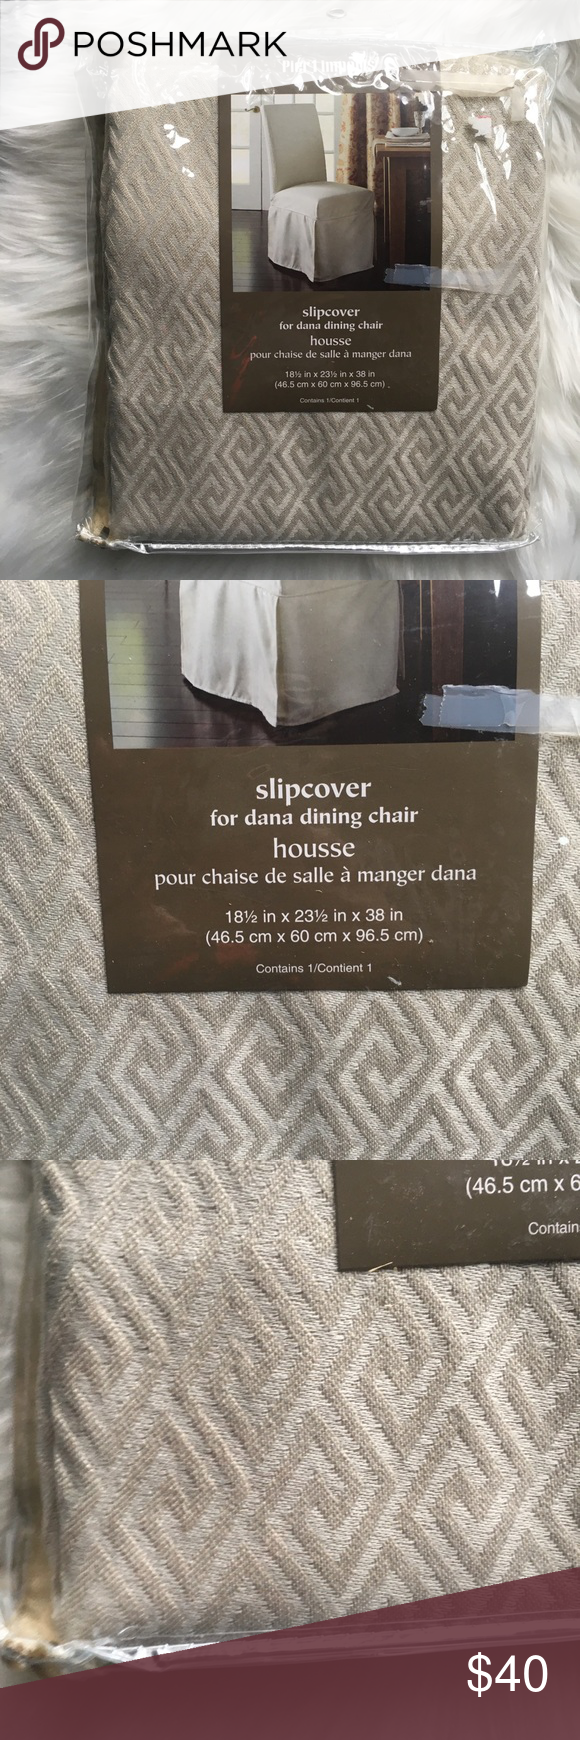 PIER 1 IMPORTS Slip Cover for Dana Dining Chair NWT ...